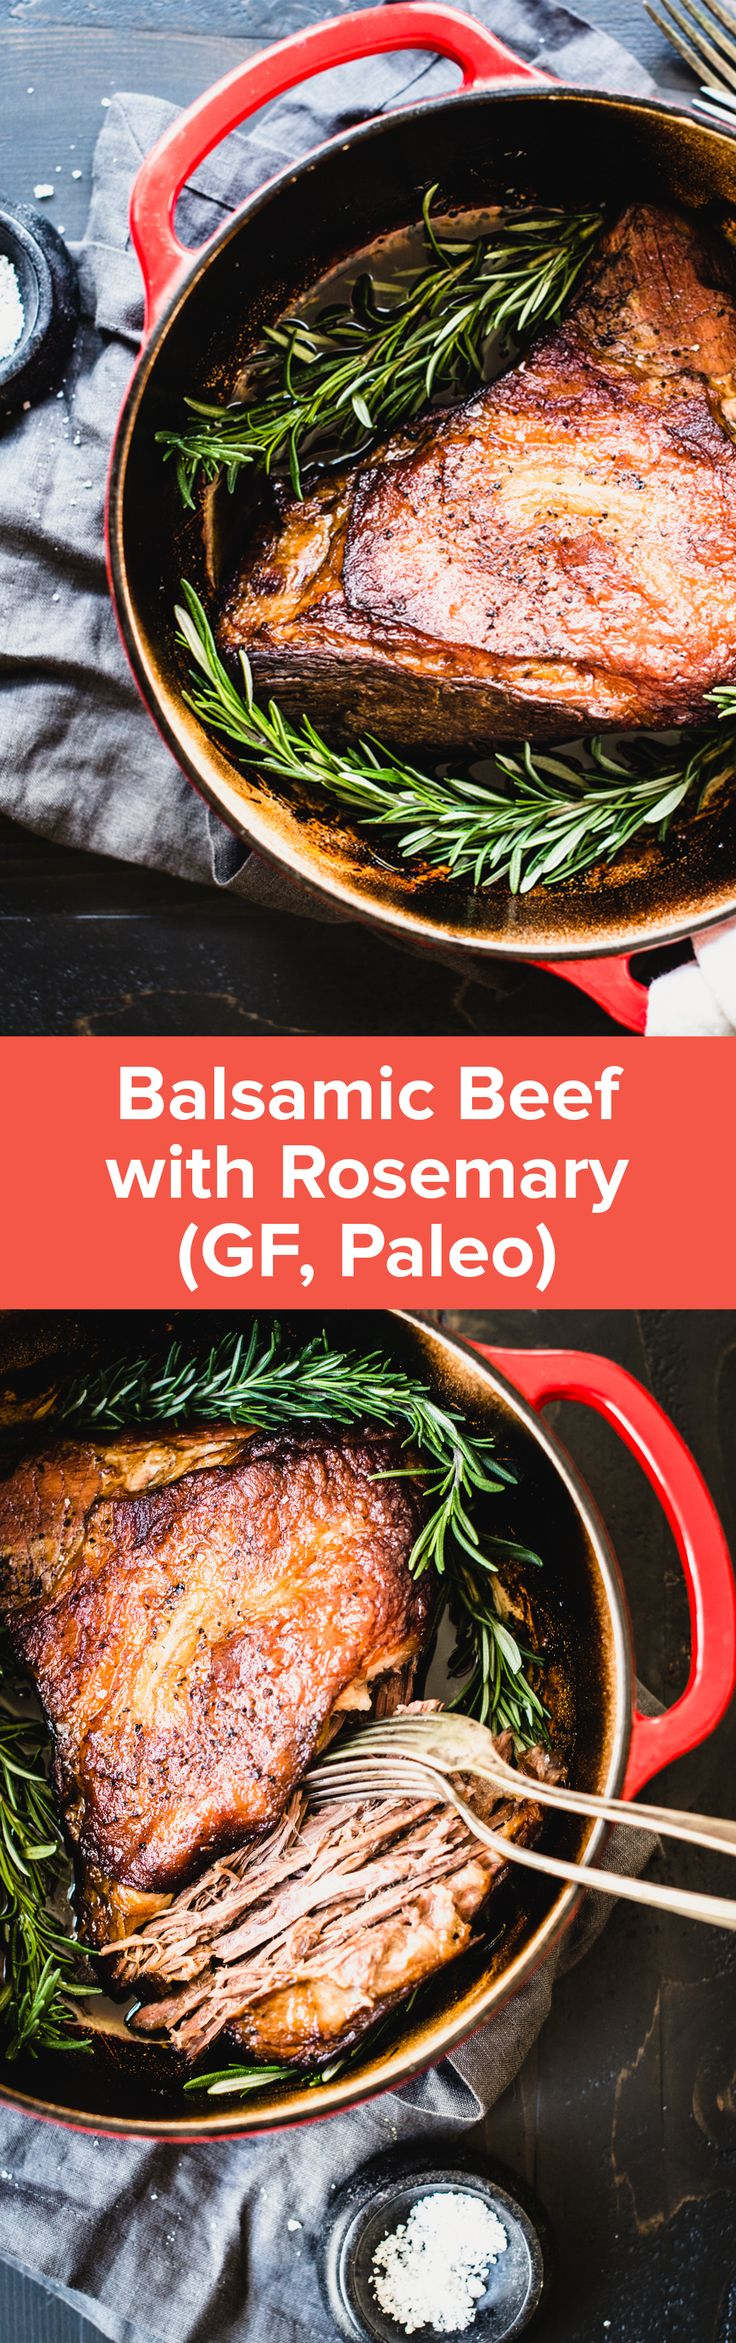 Balsamic Beef with Rosemary | StupidEasyPaleo.com